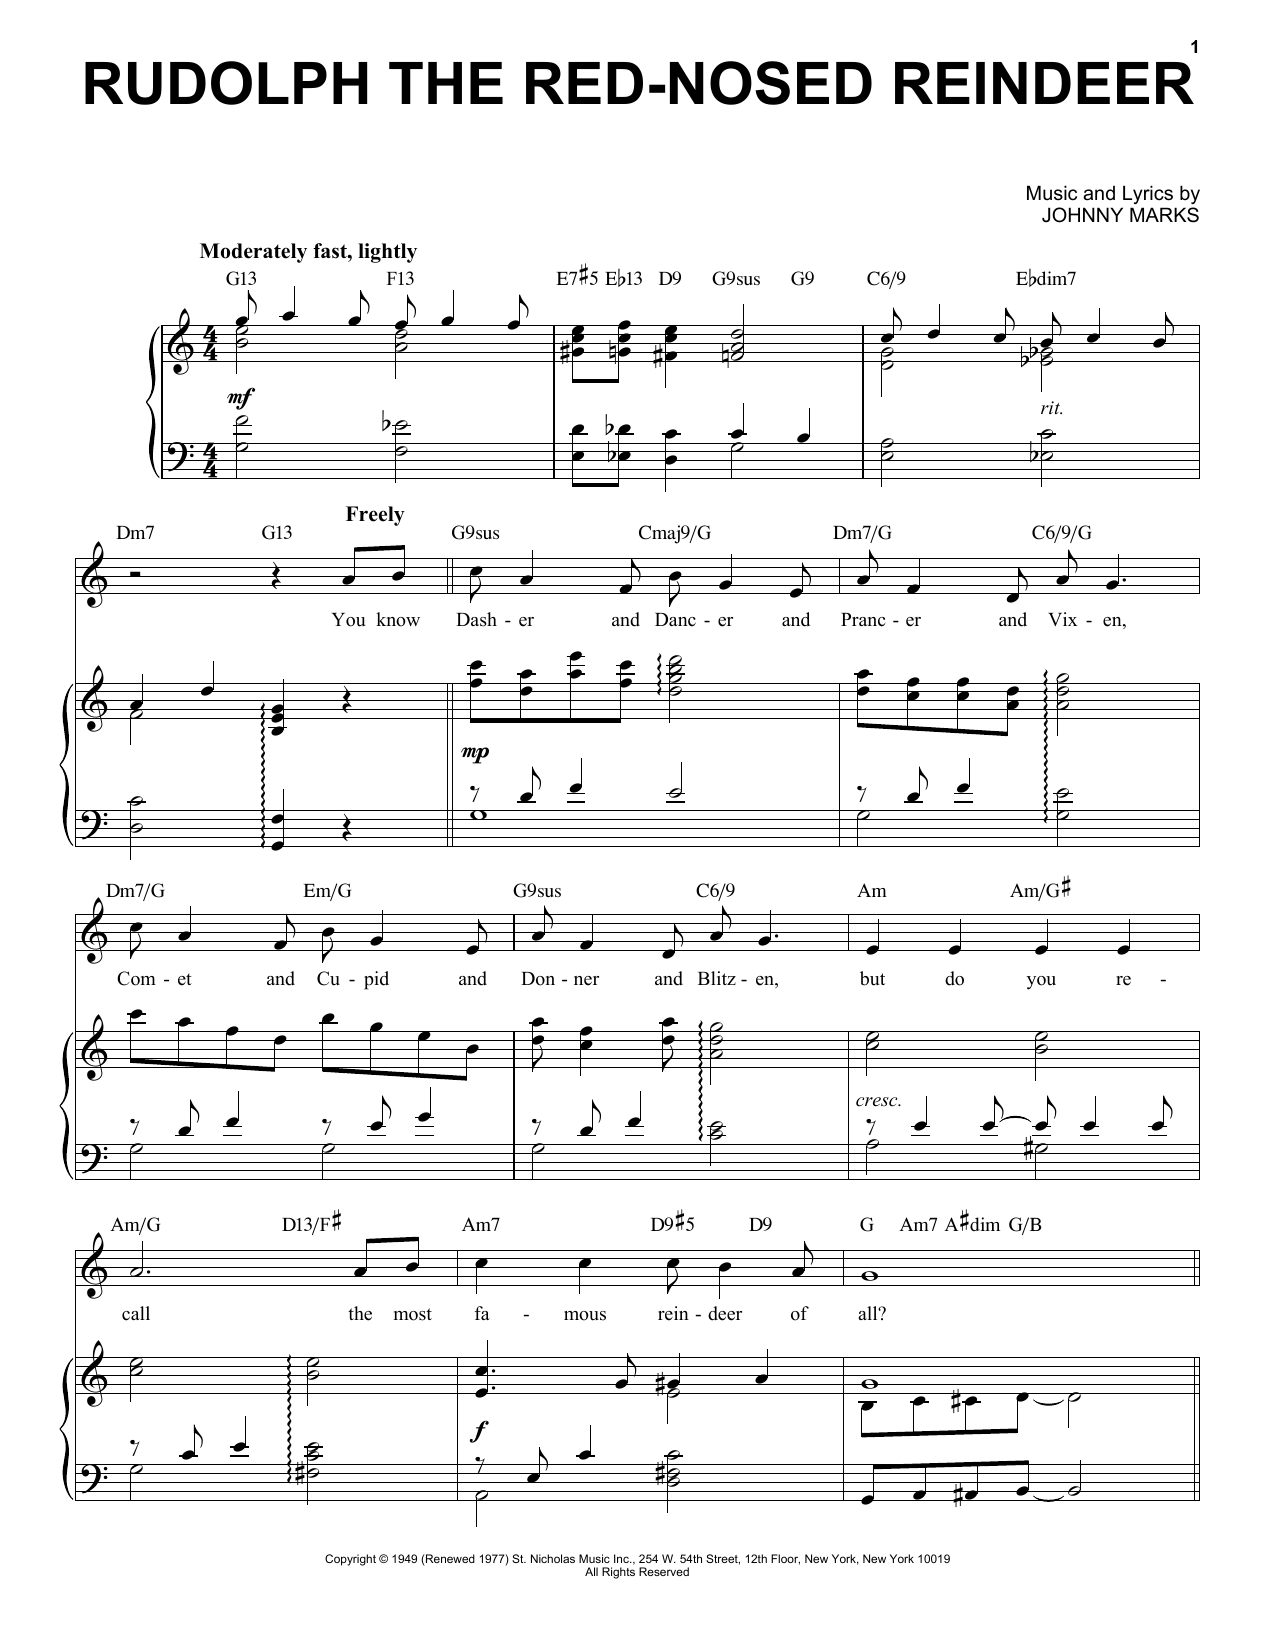 Johnny Marks Rudolph The Red-Nosed Reindeer [Jazz Version] (arr. Brent Edstrom) sheet music notes printable PDF score